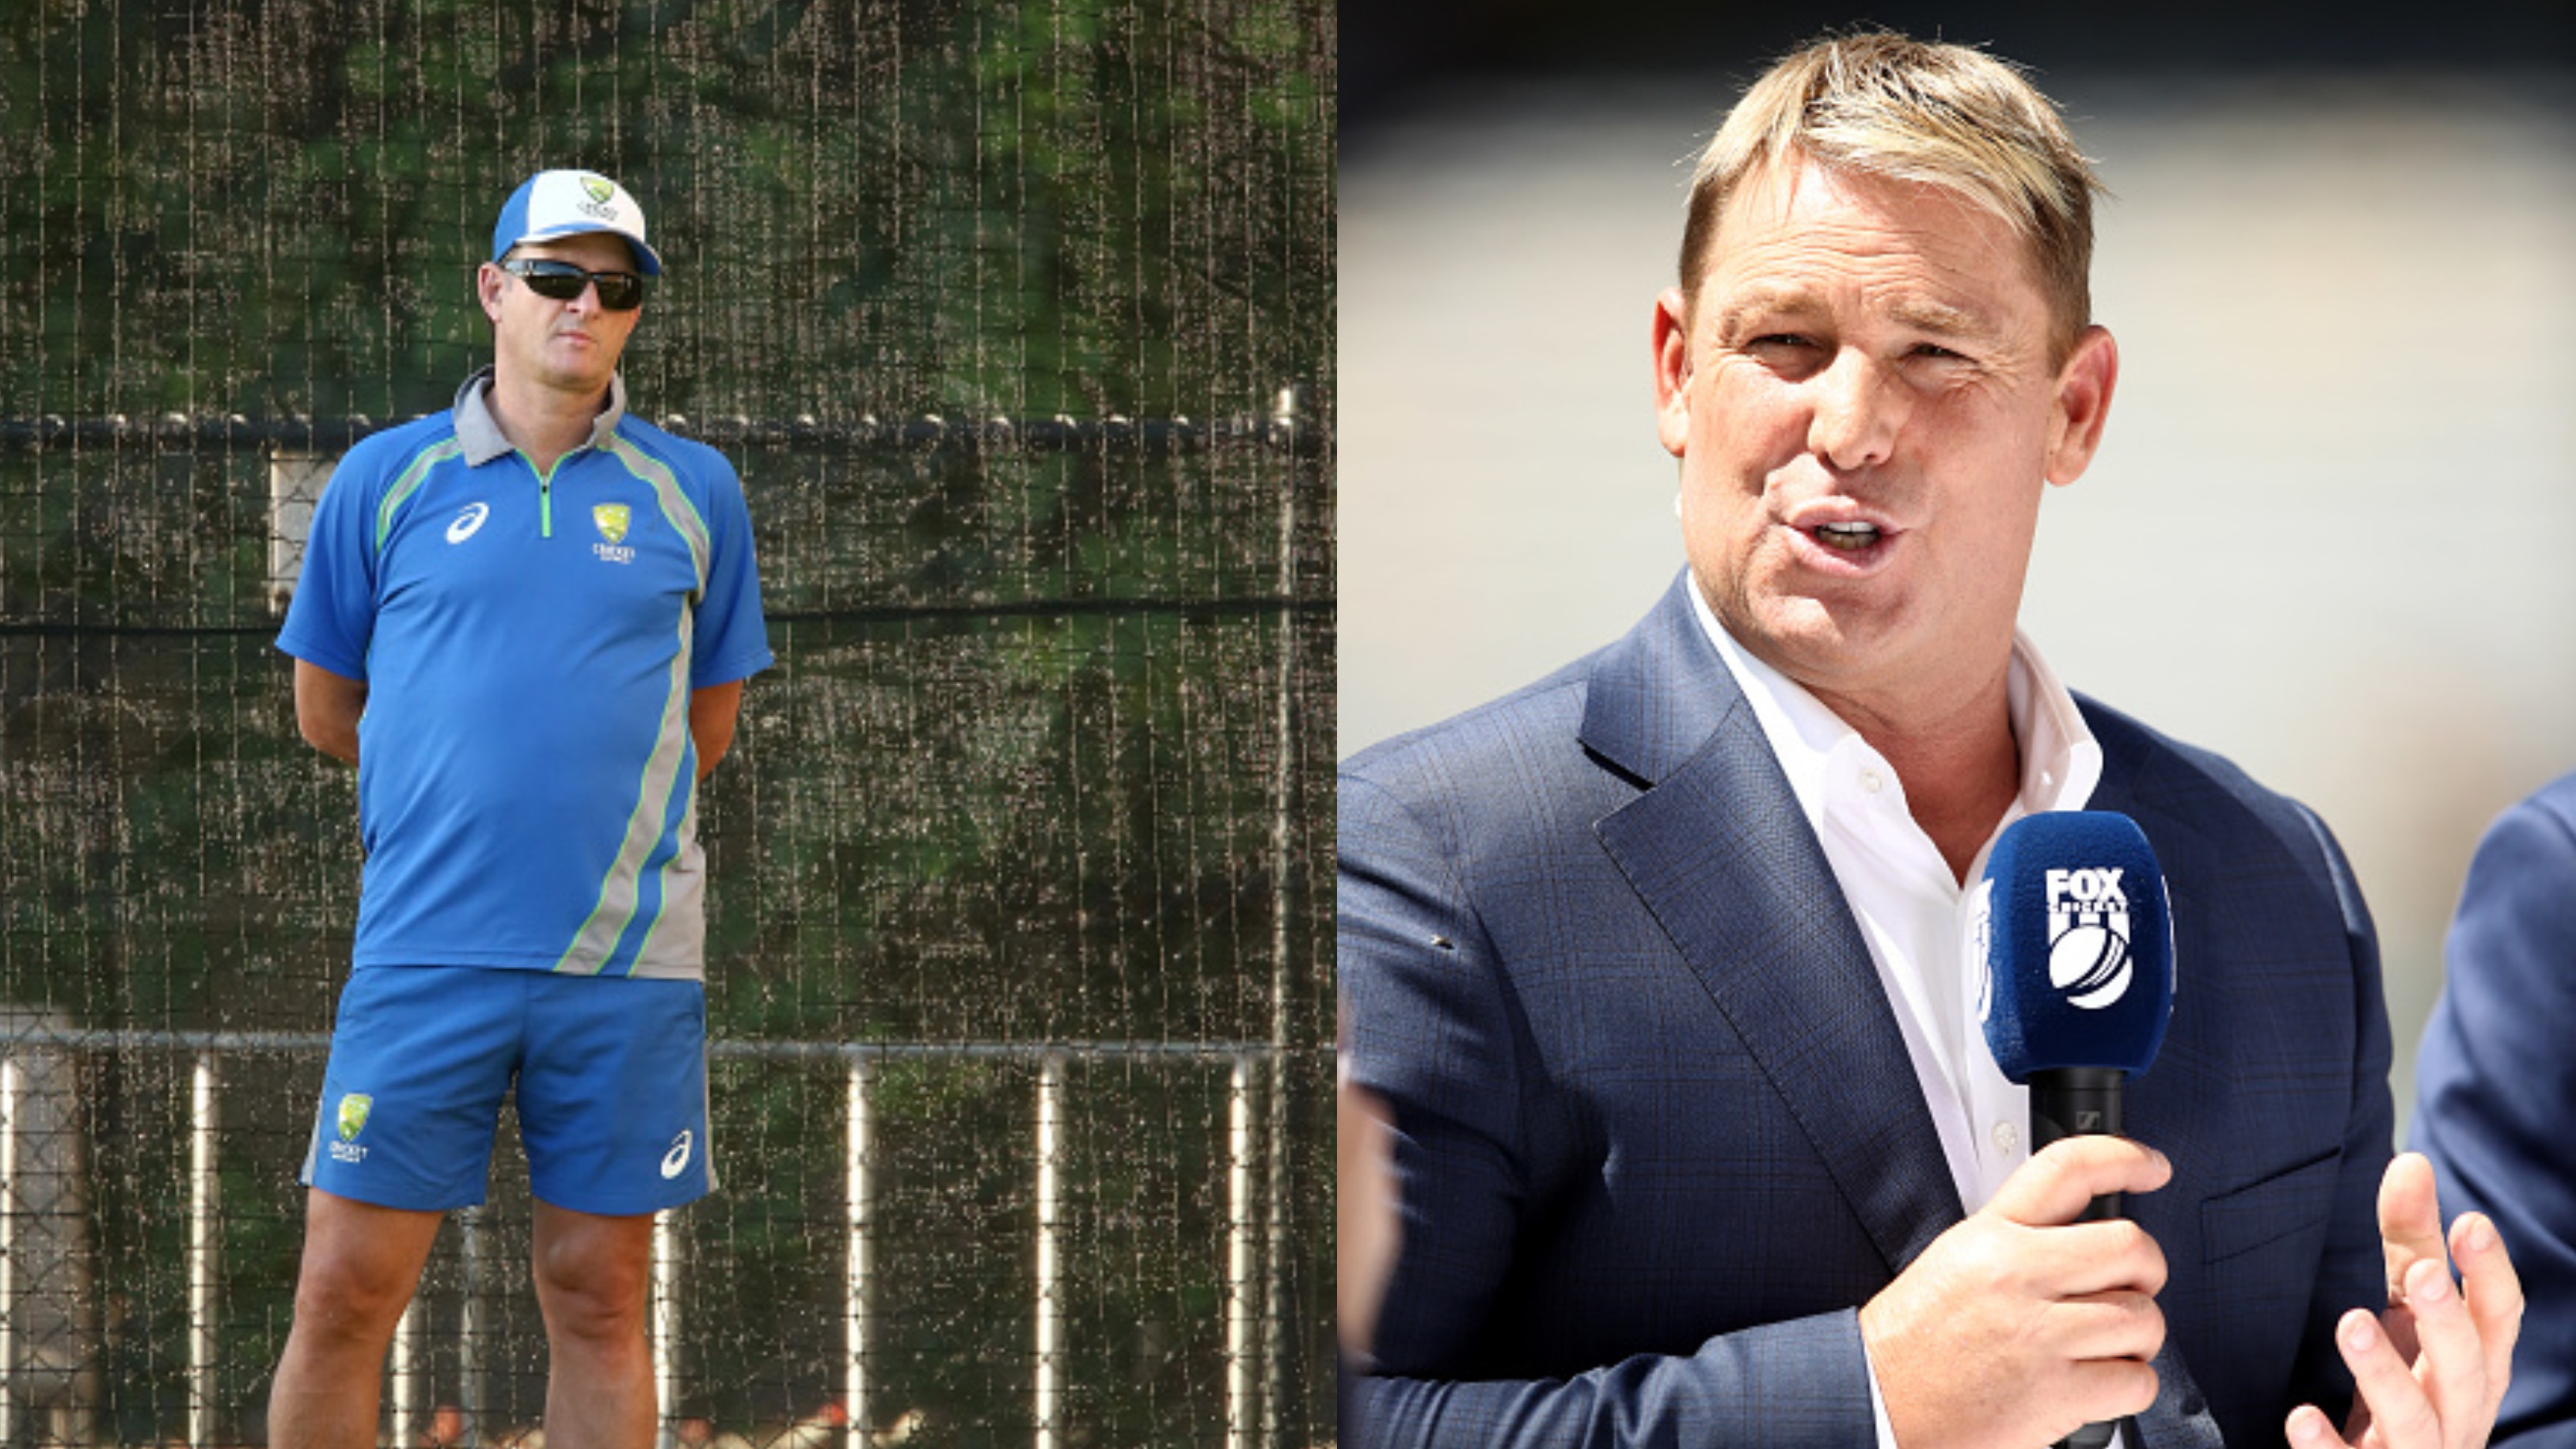 Shane Warne suggests Australia batting coach replacement